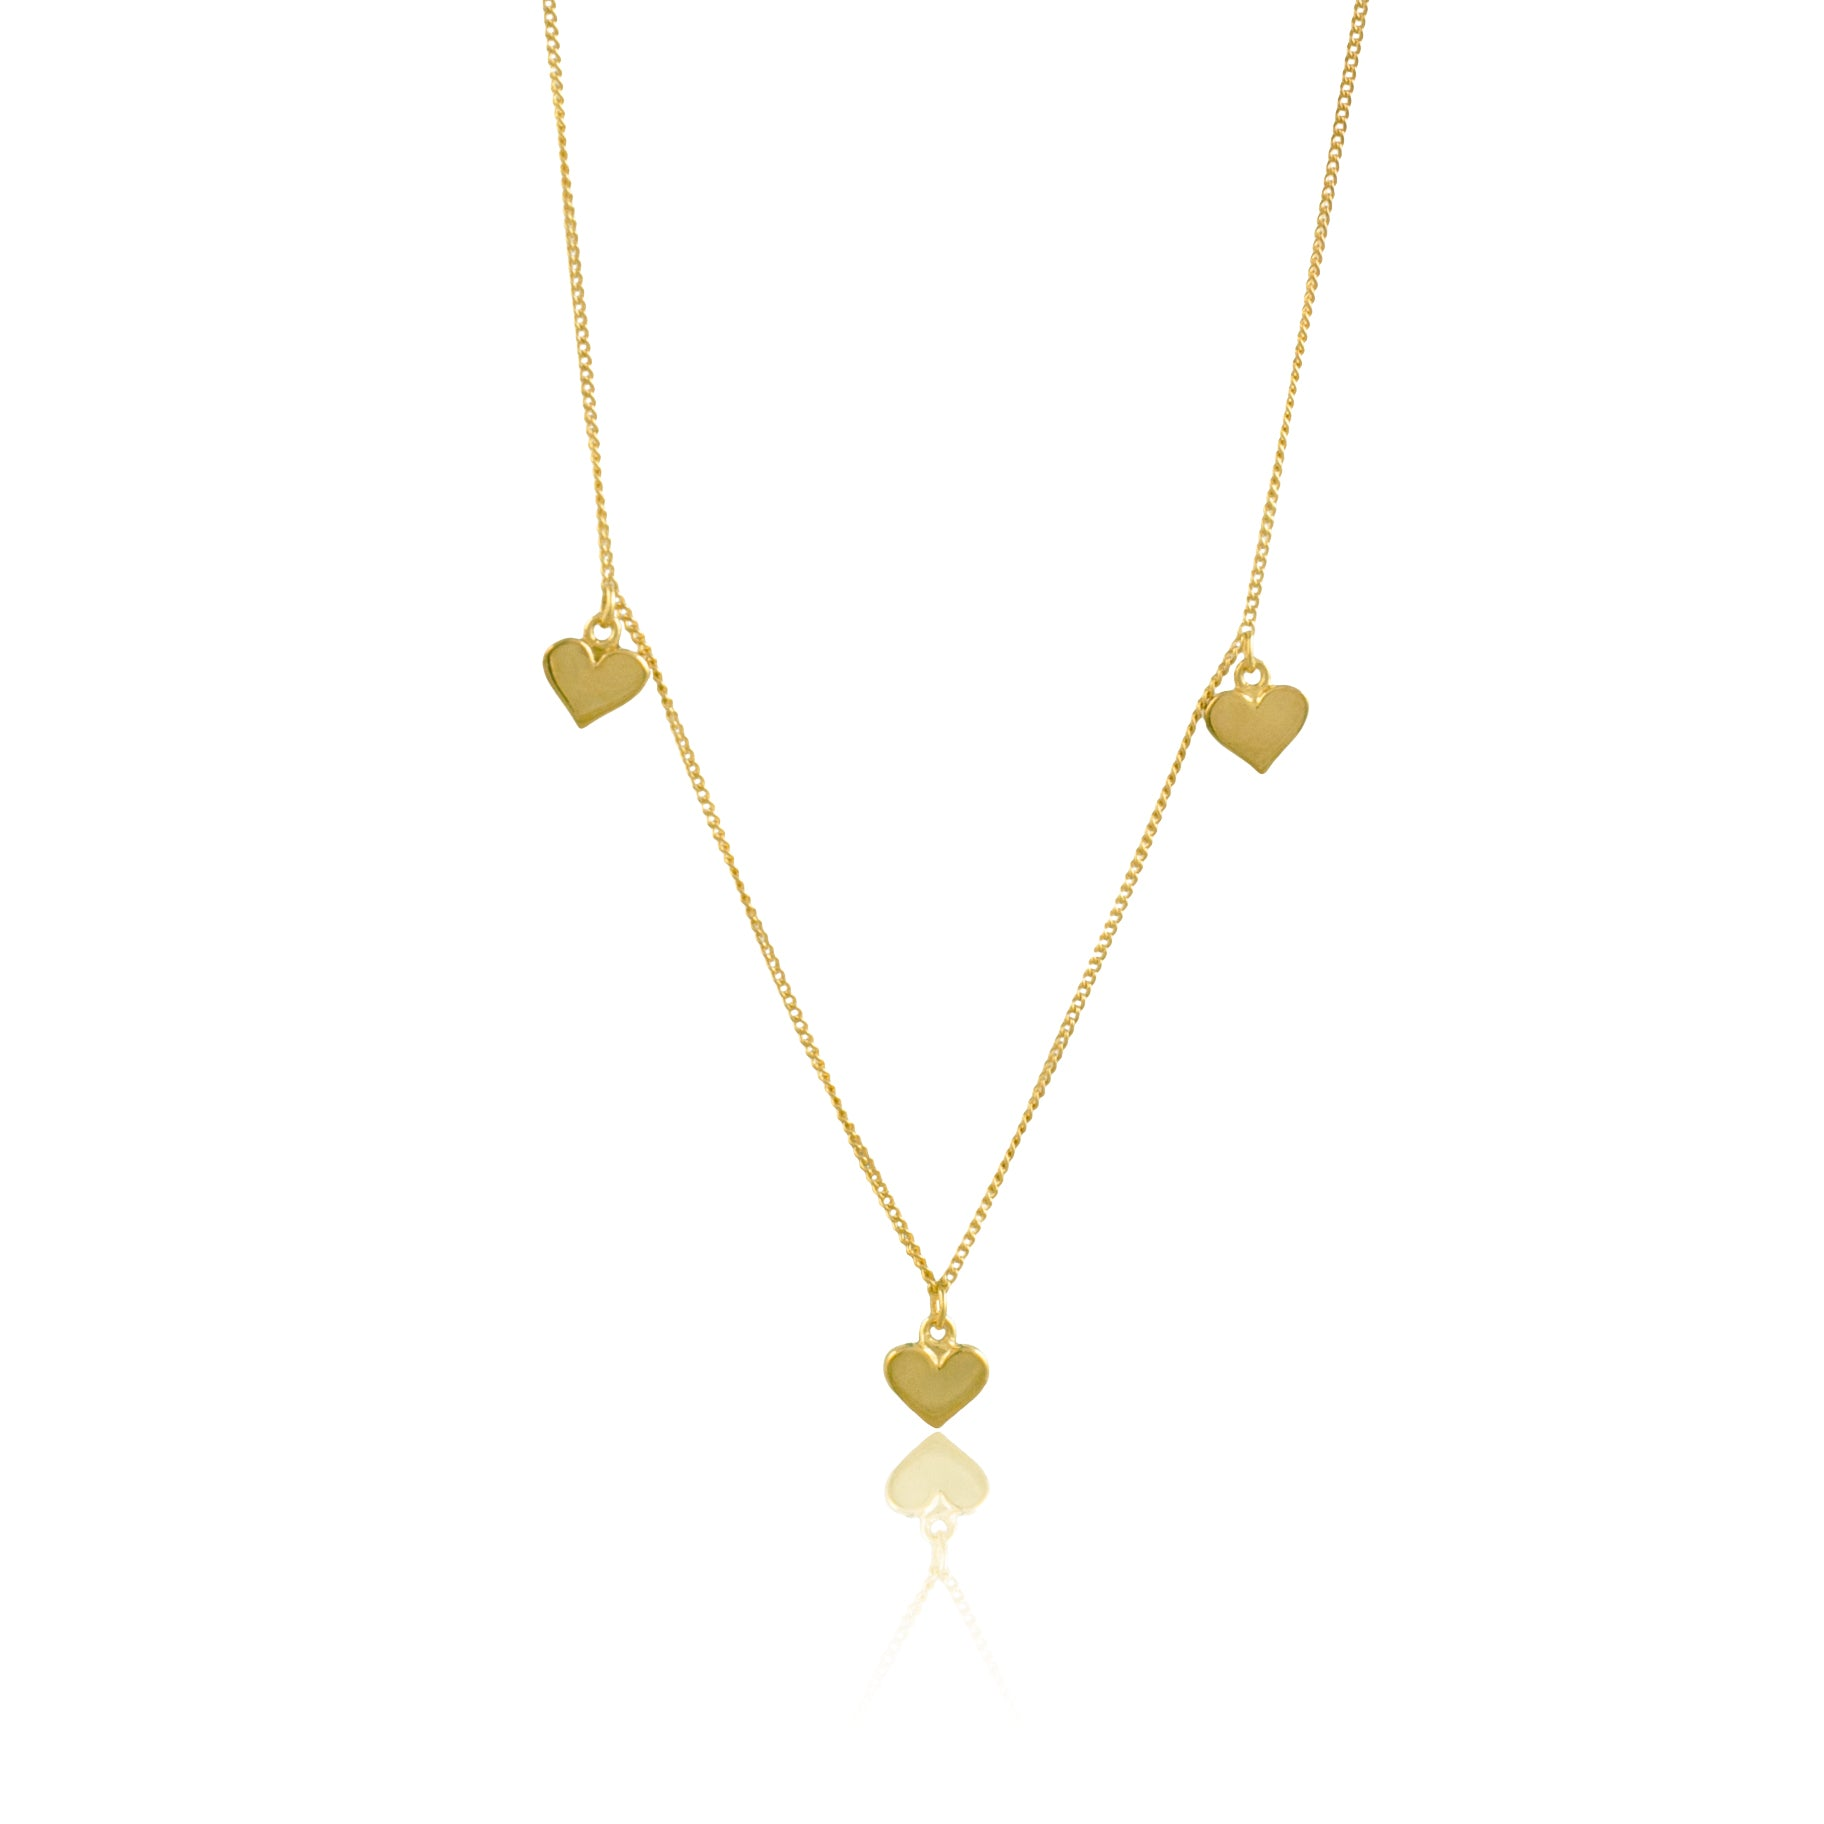 SOLID GOLD - Triple Heart Necklace